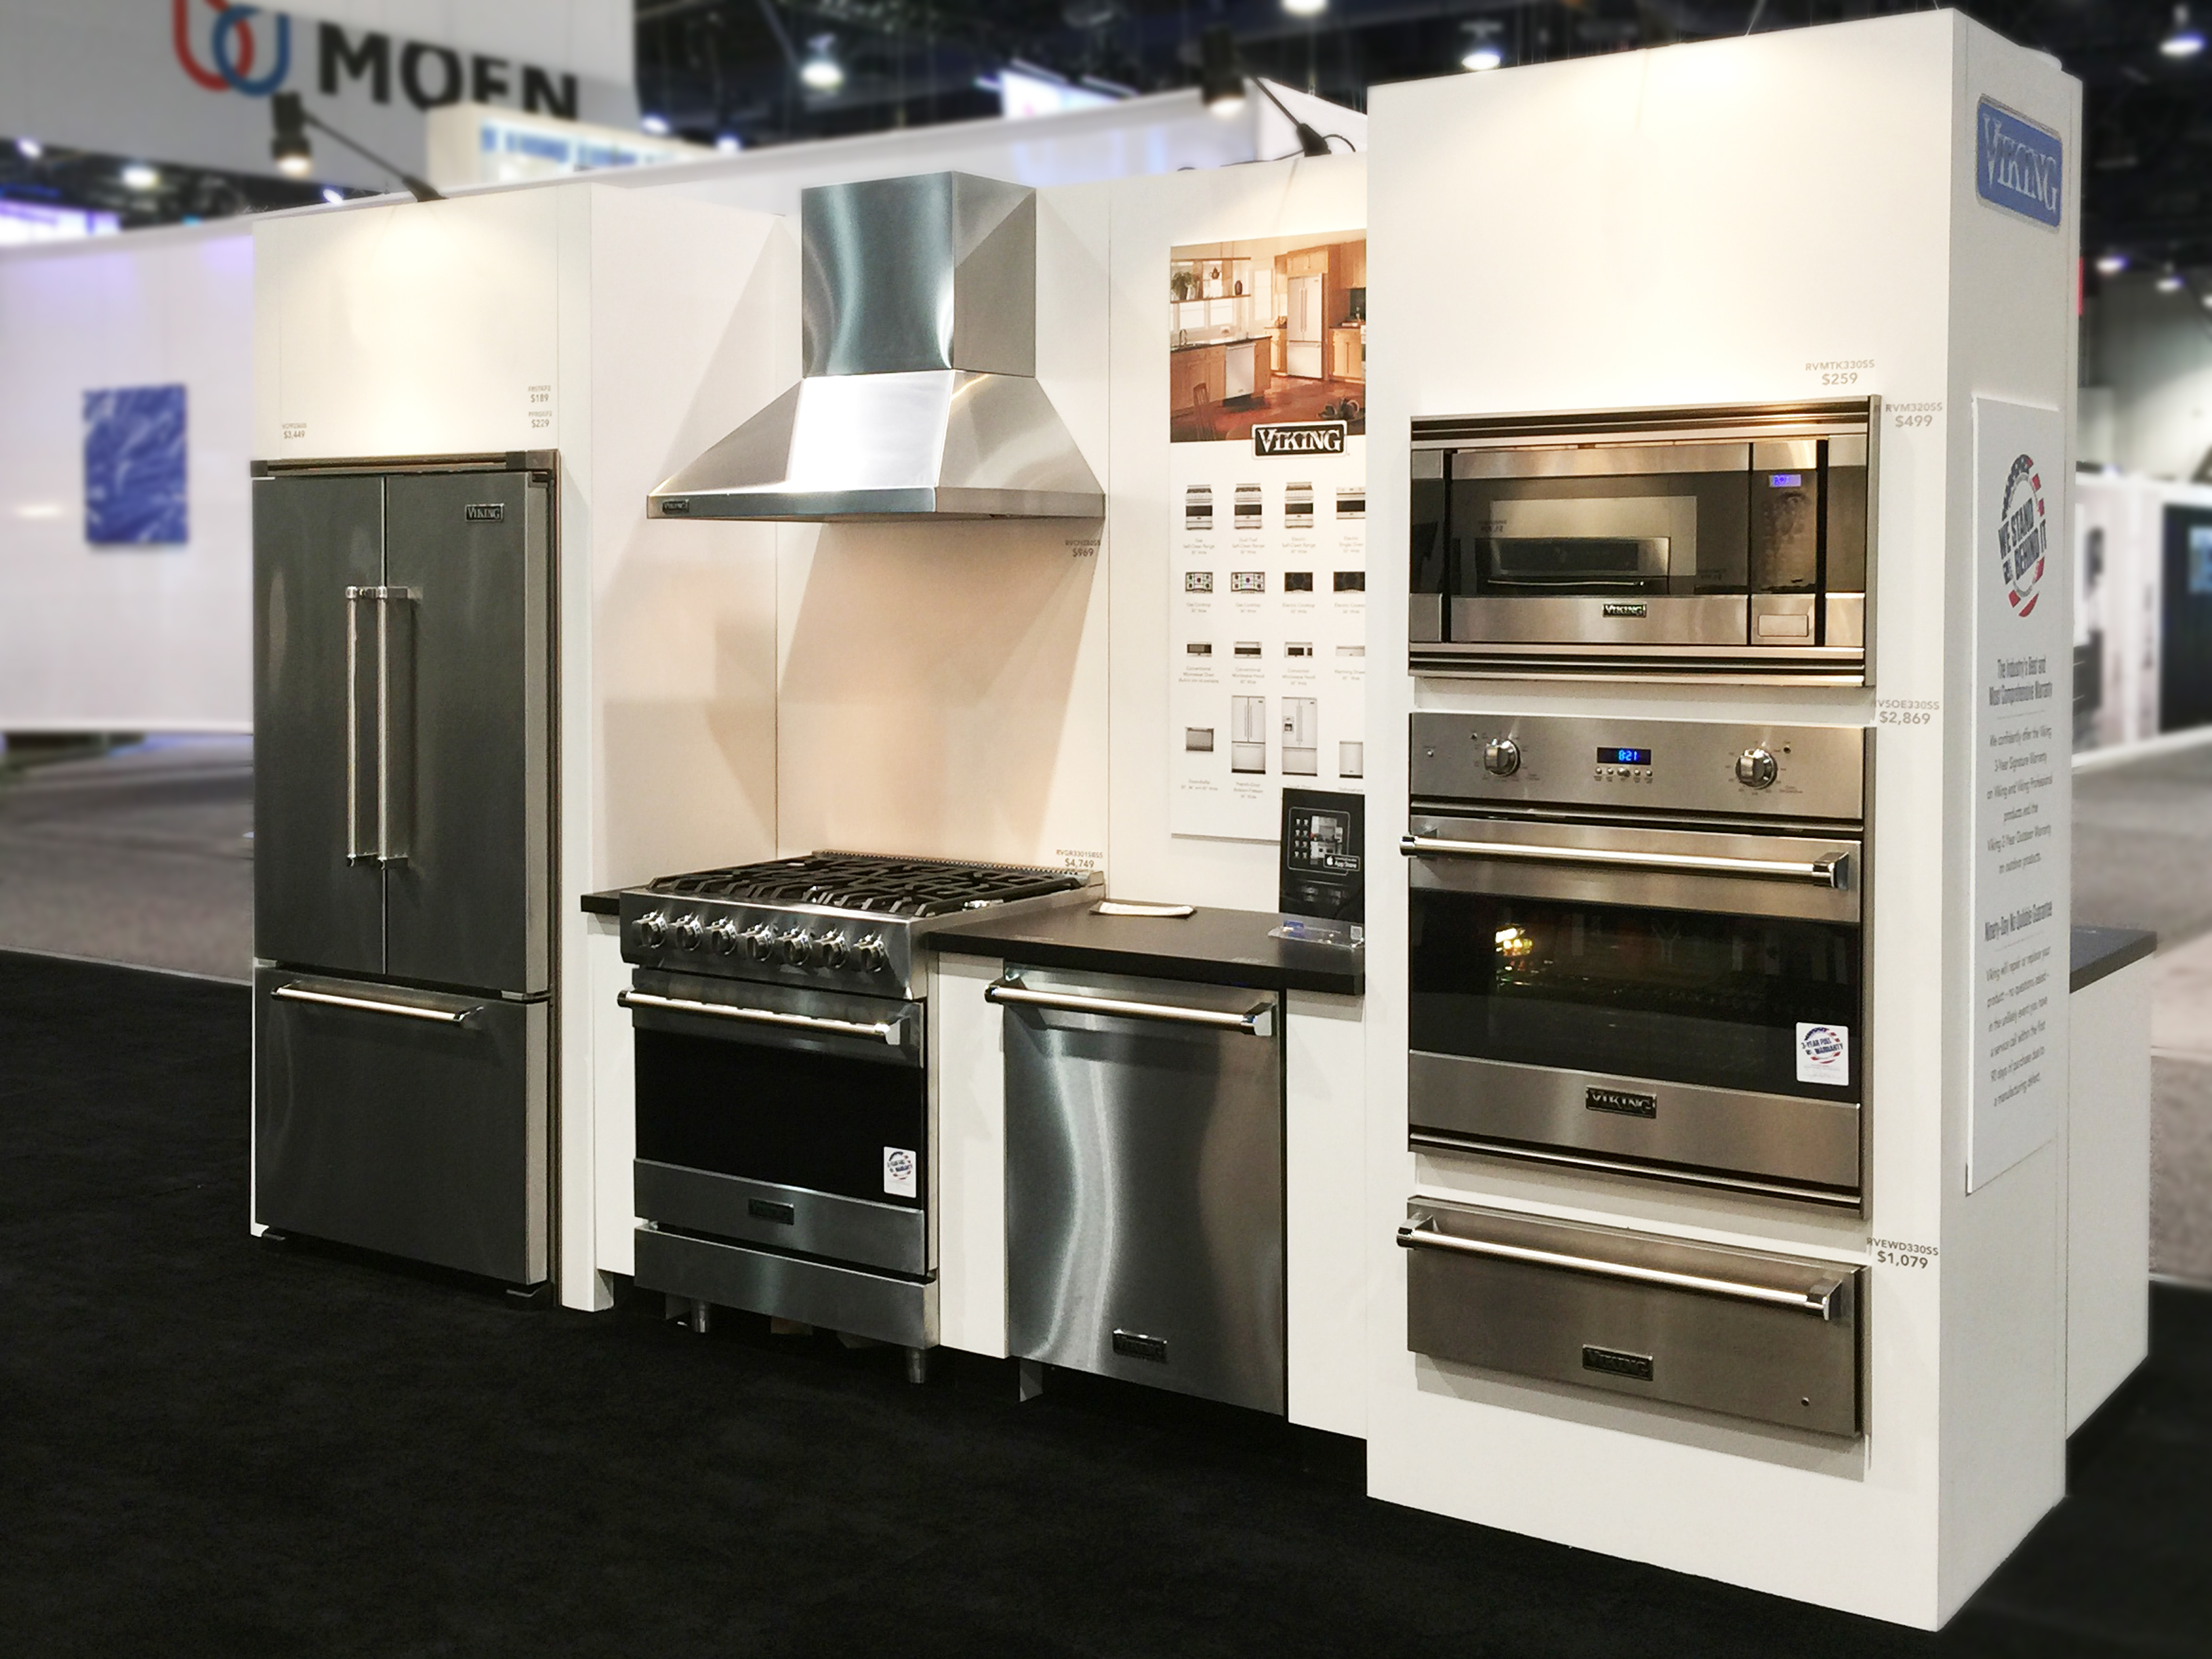 Viking Range Llc To Showcase New Products At Kbis Show Old